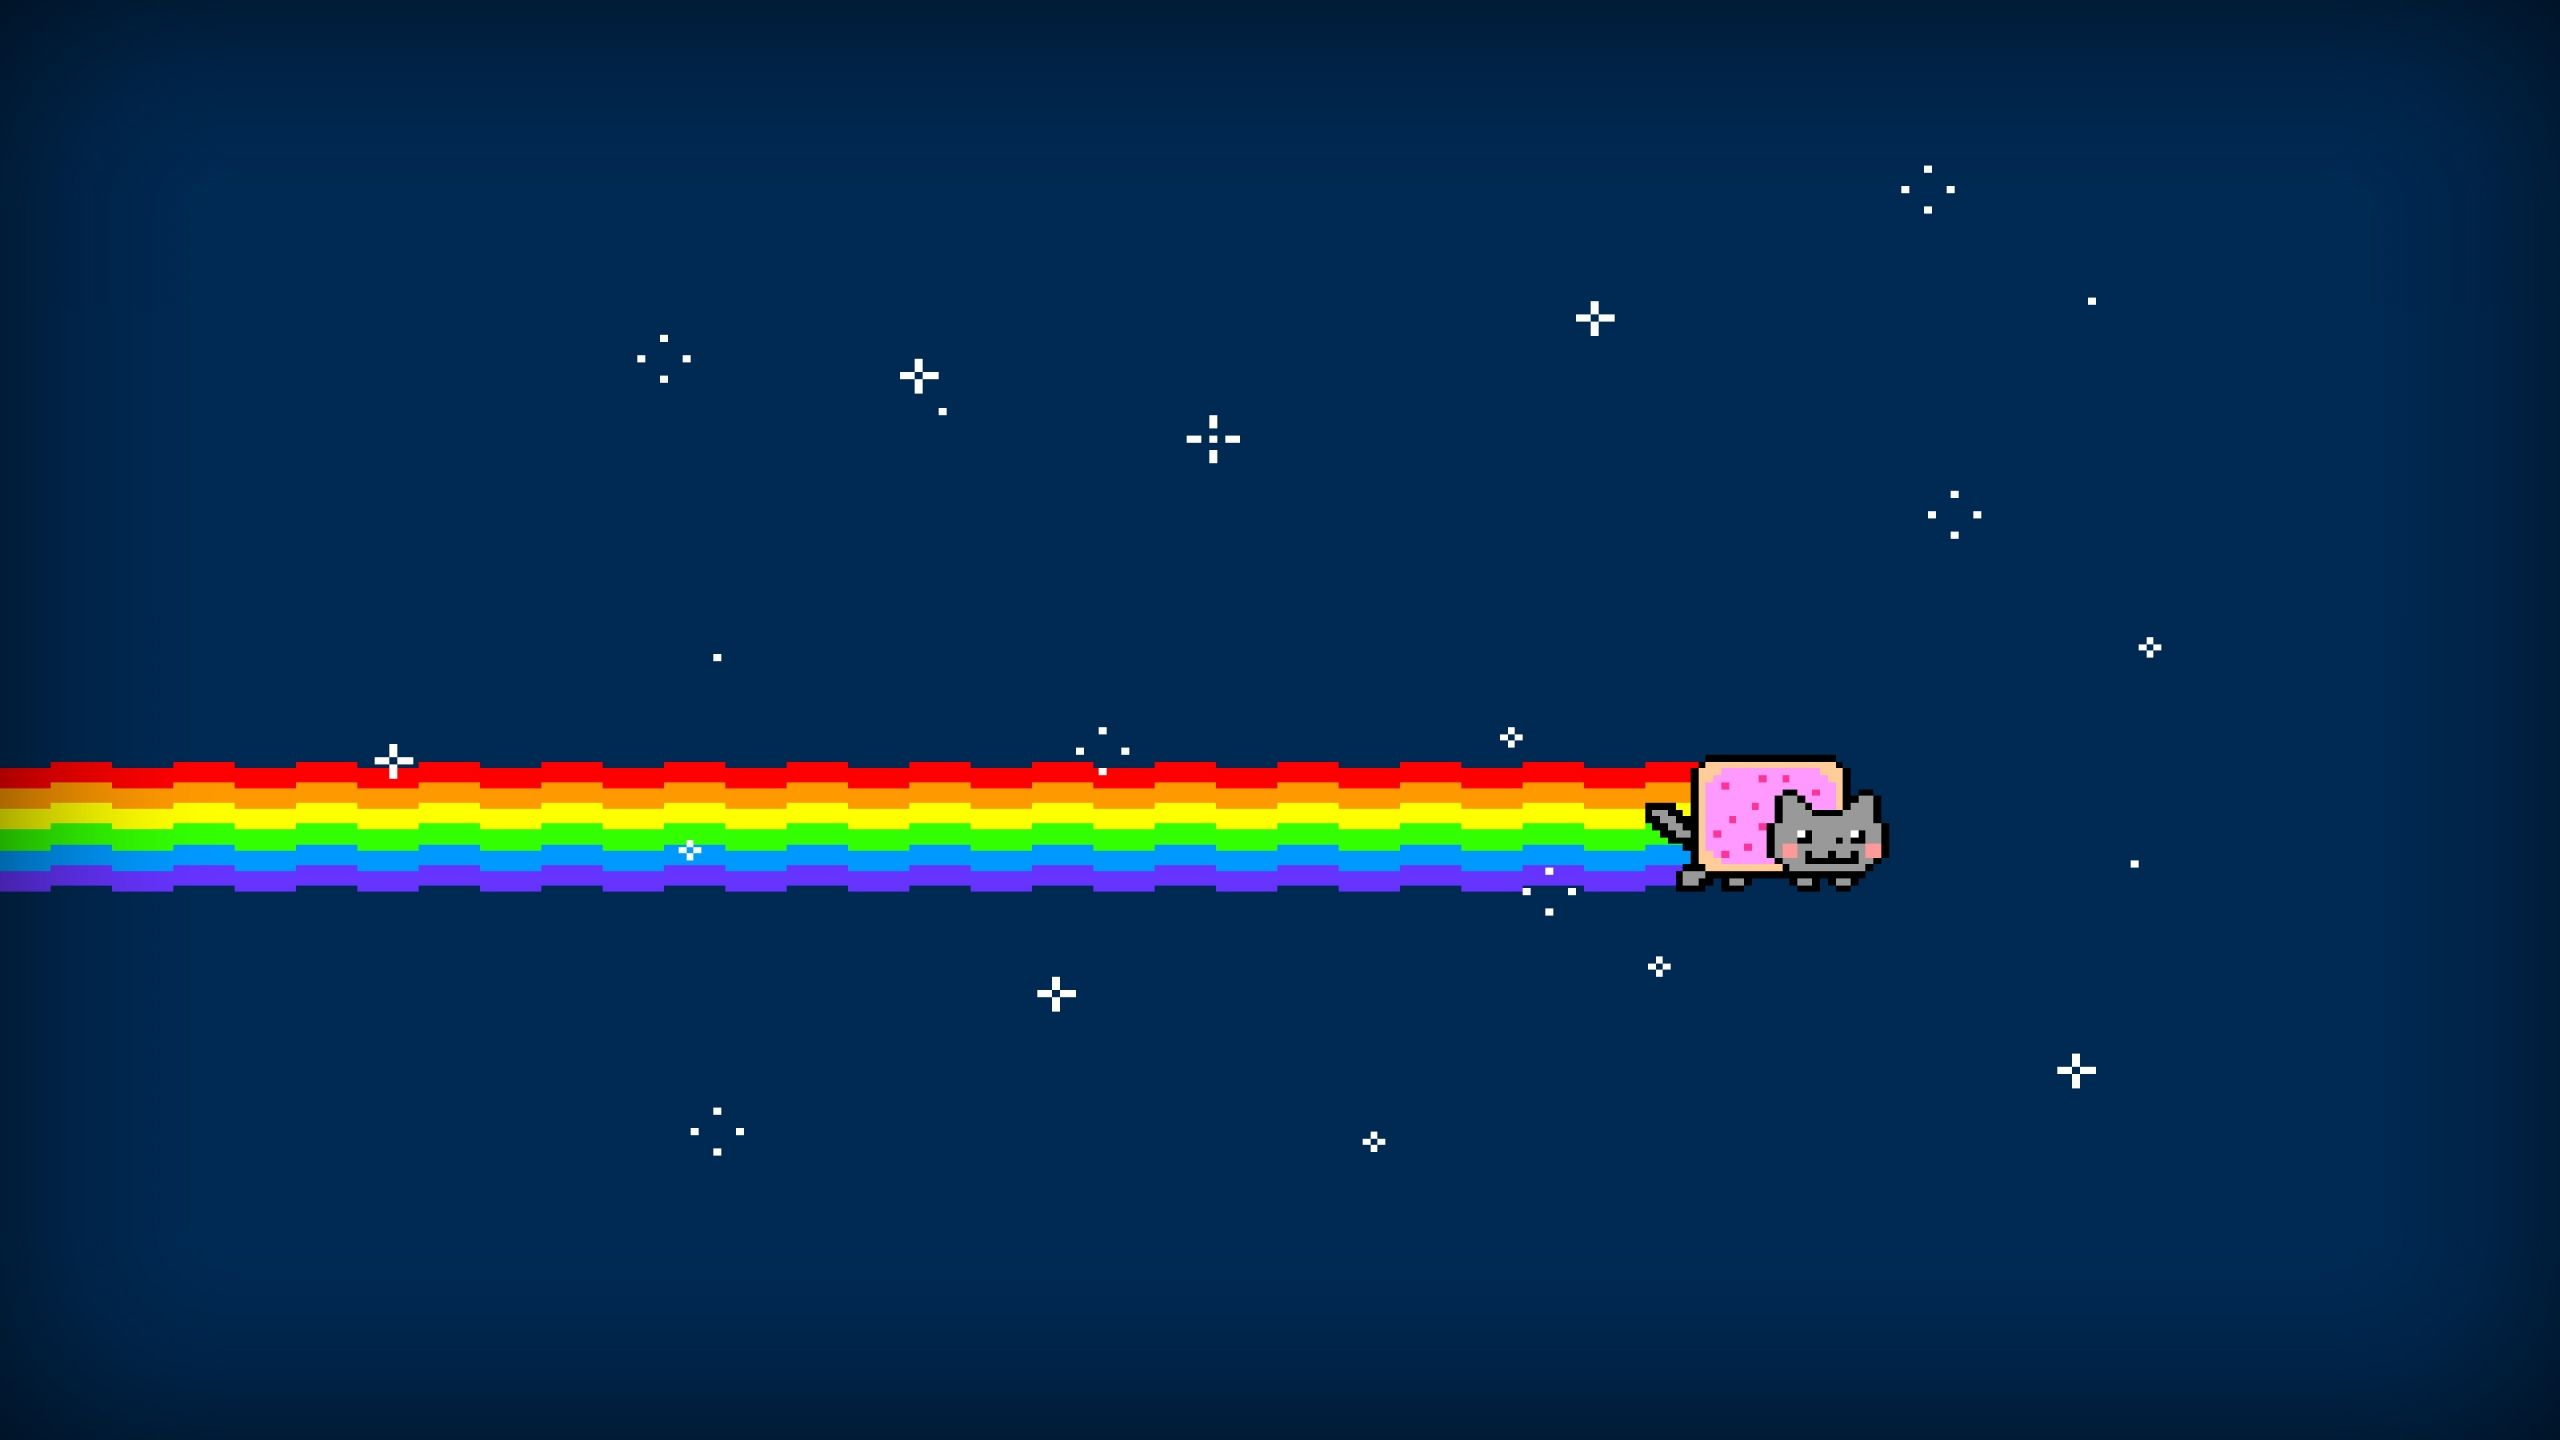 Gif Wallpapers Hd Wallpapers Backgrounds Of Your Choice Nyan Cat Cat Wallpaper Cat Background